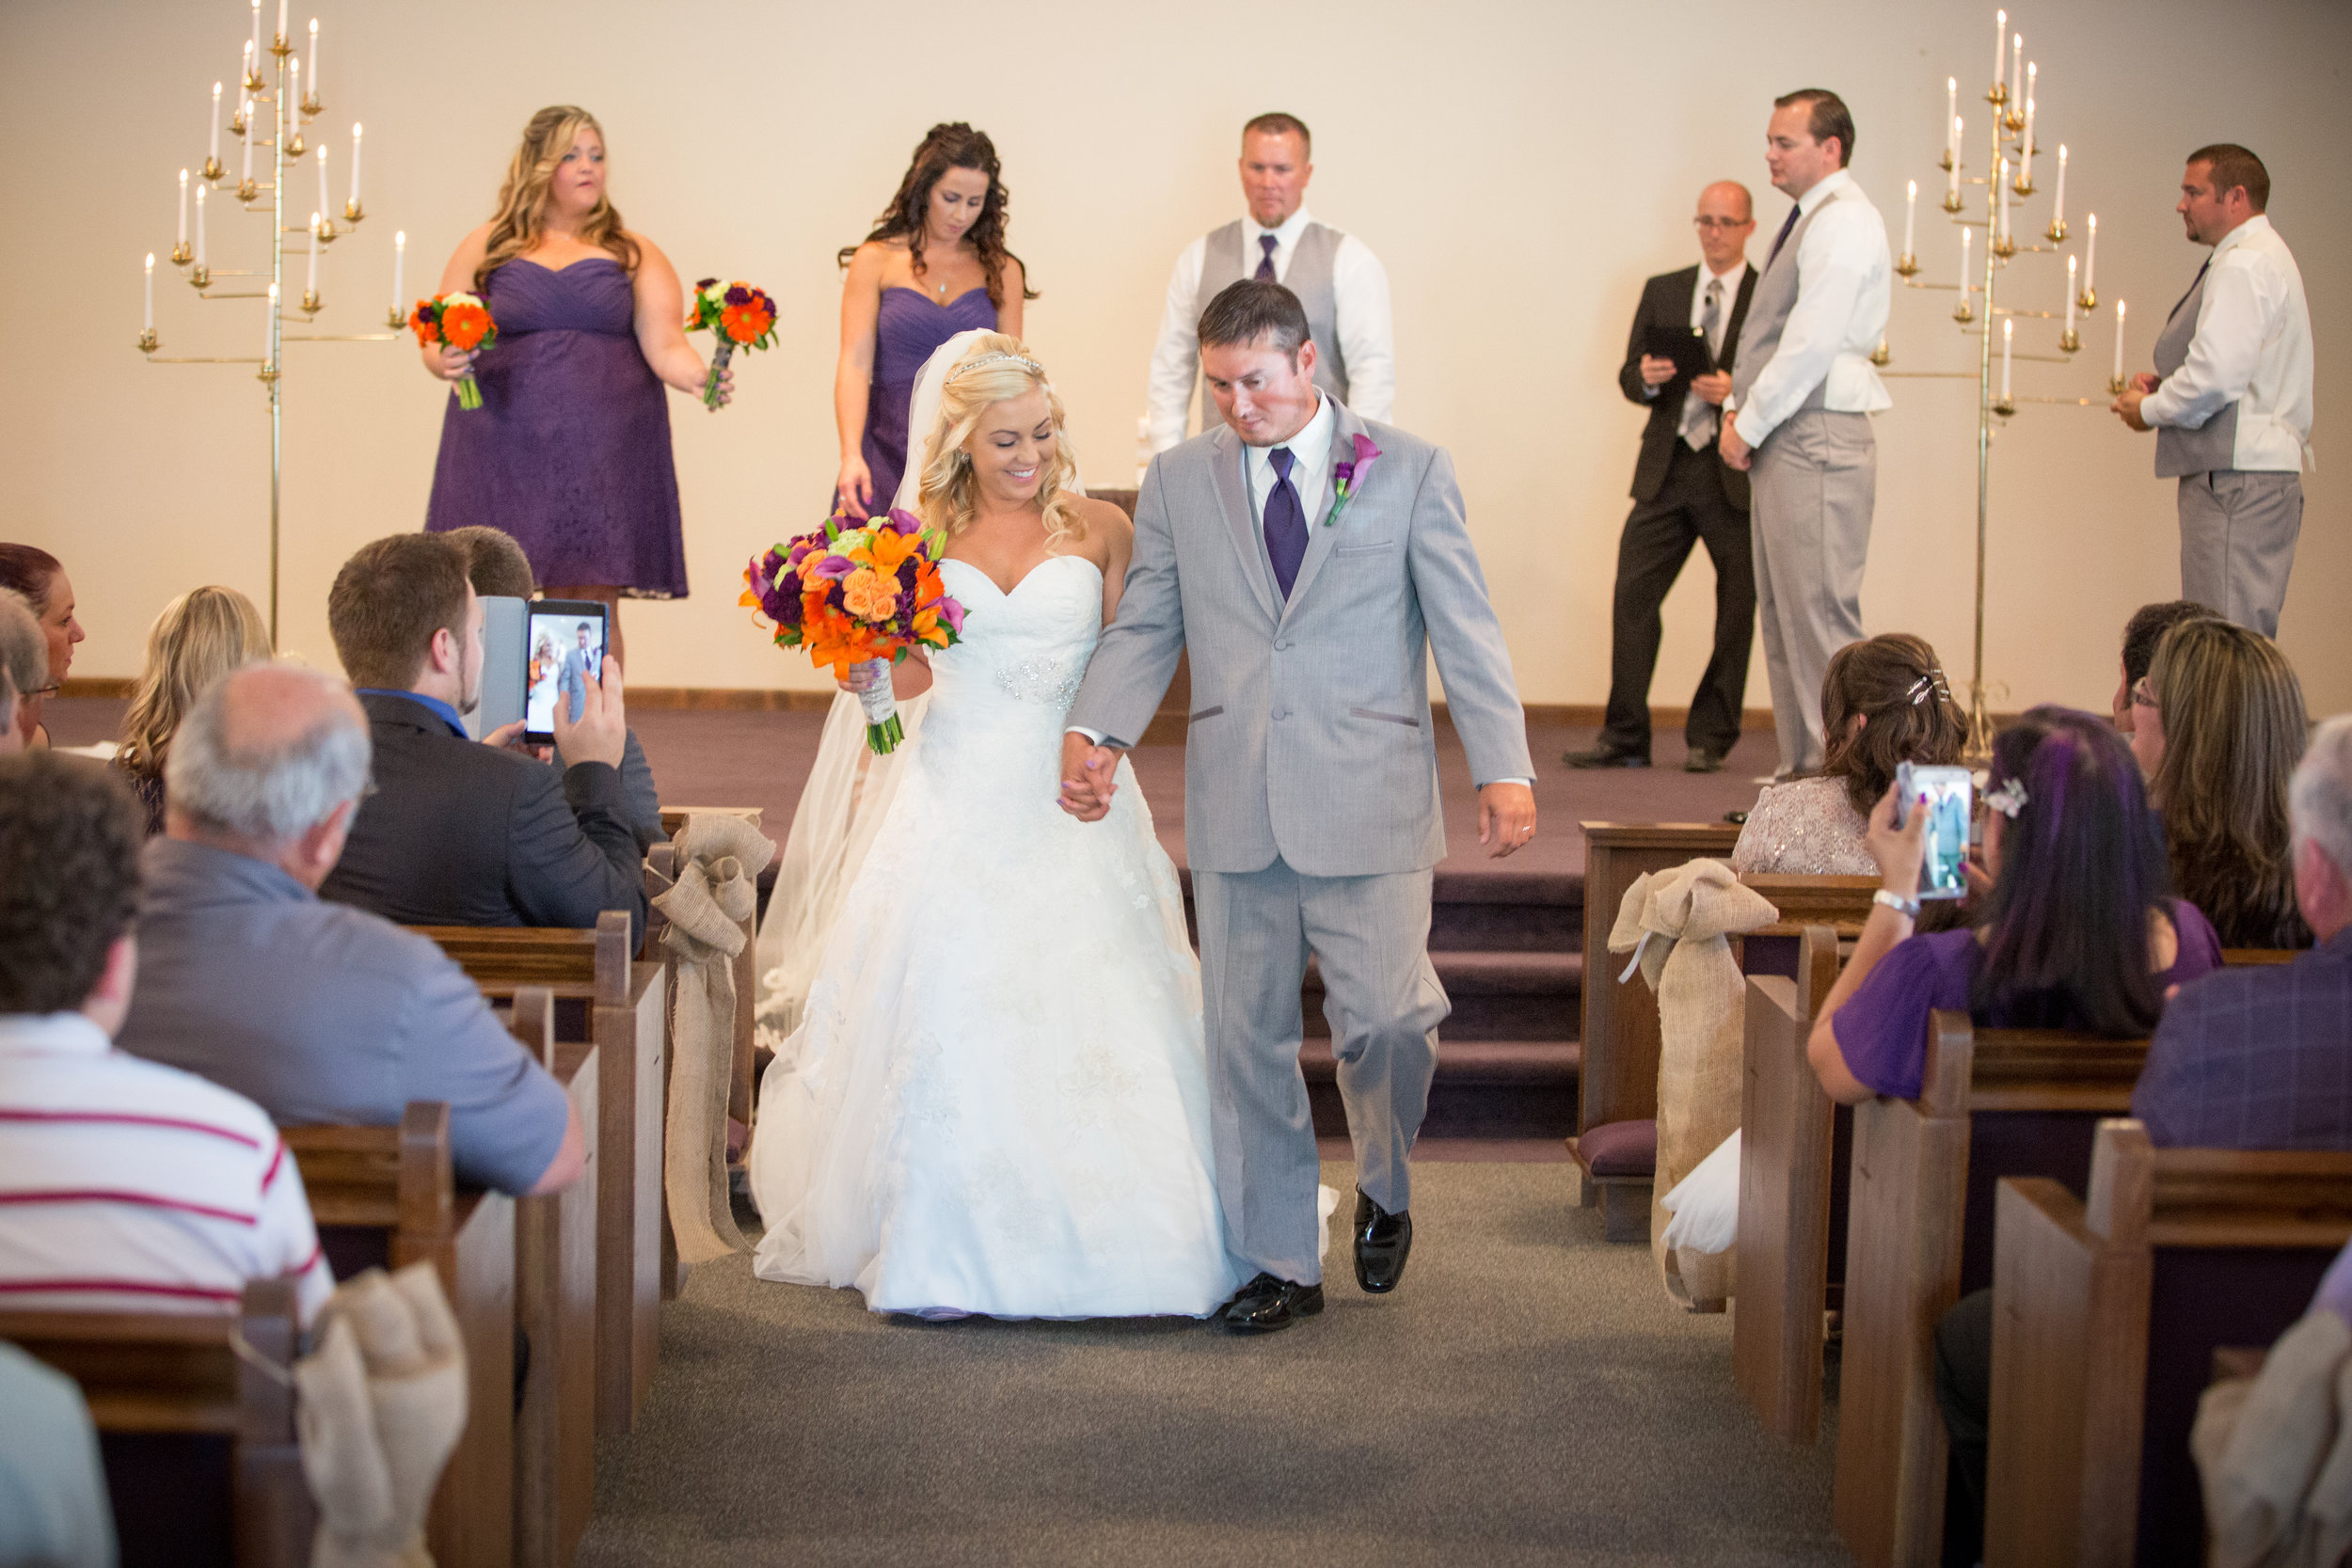 Bride and groom walking down aisle as husband and wife